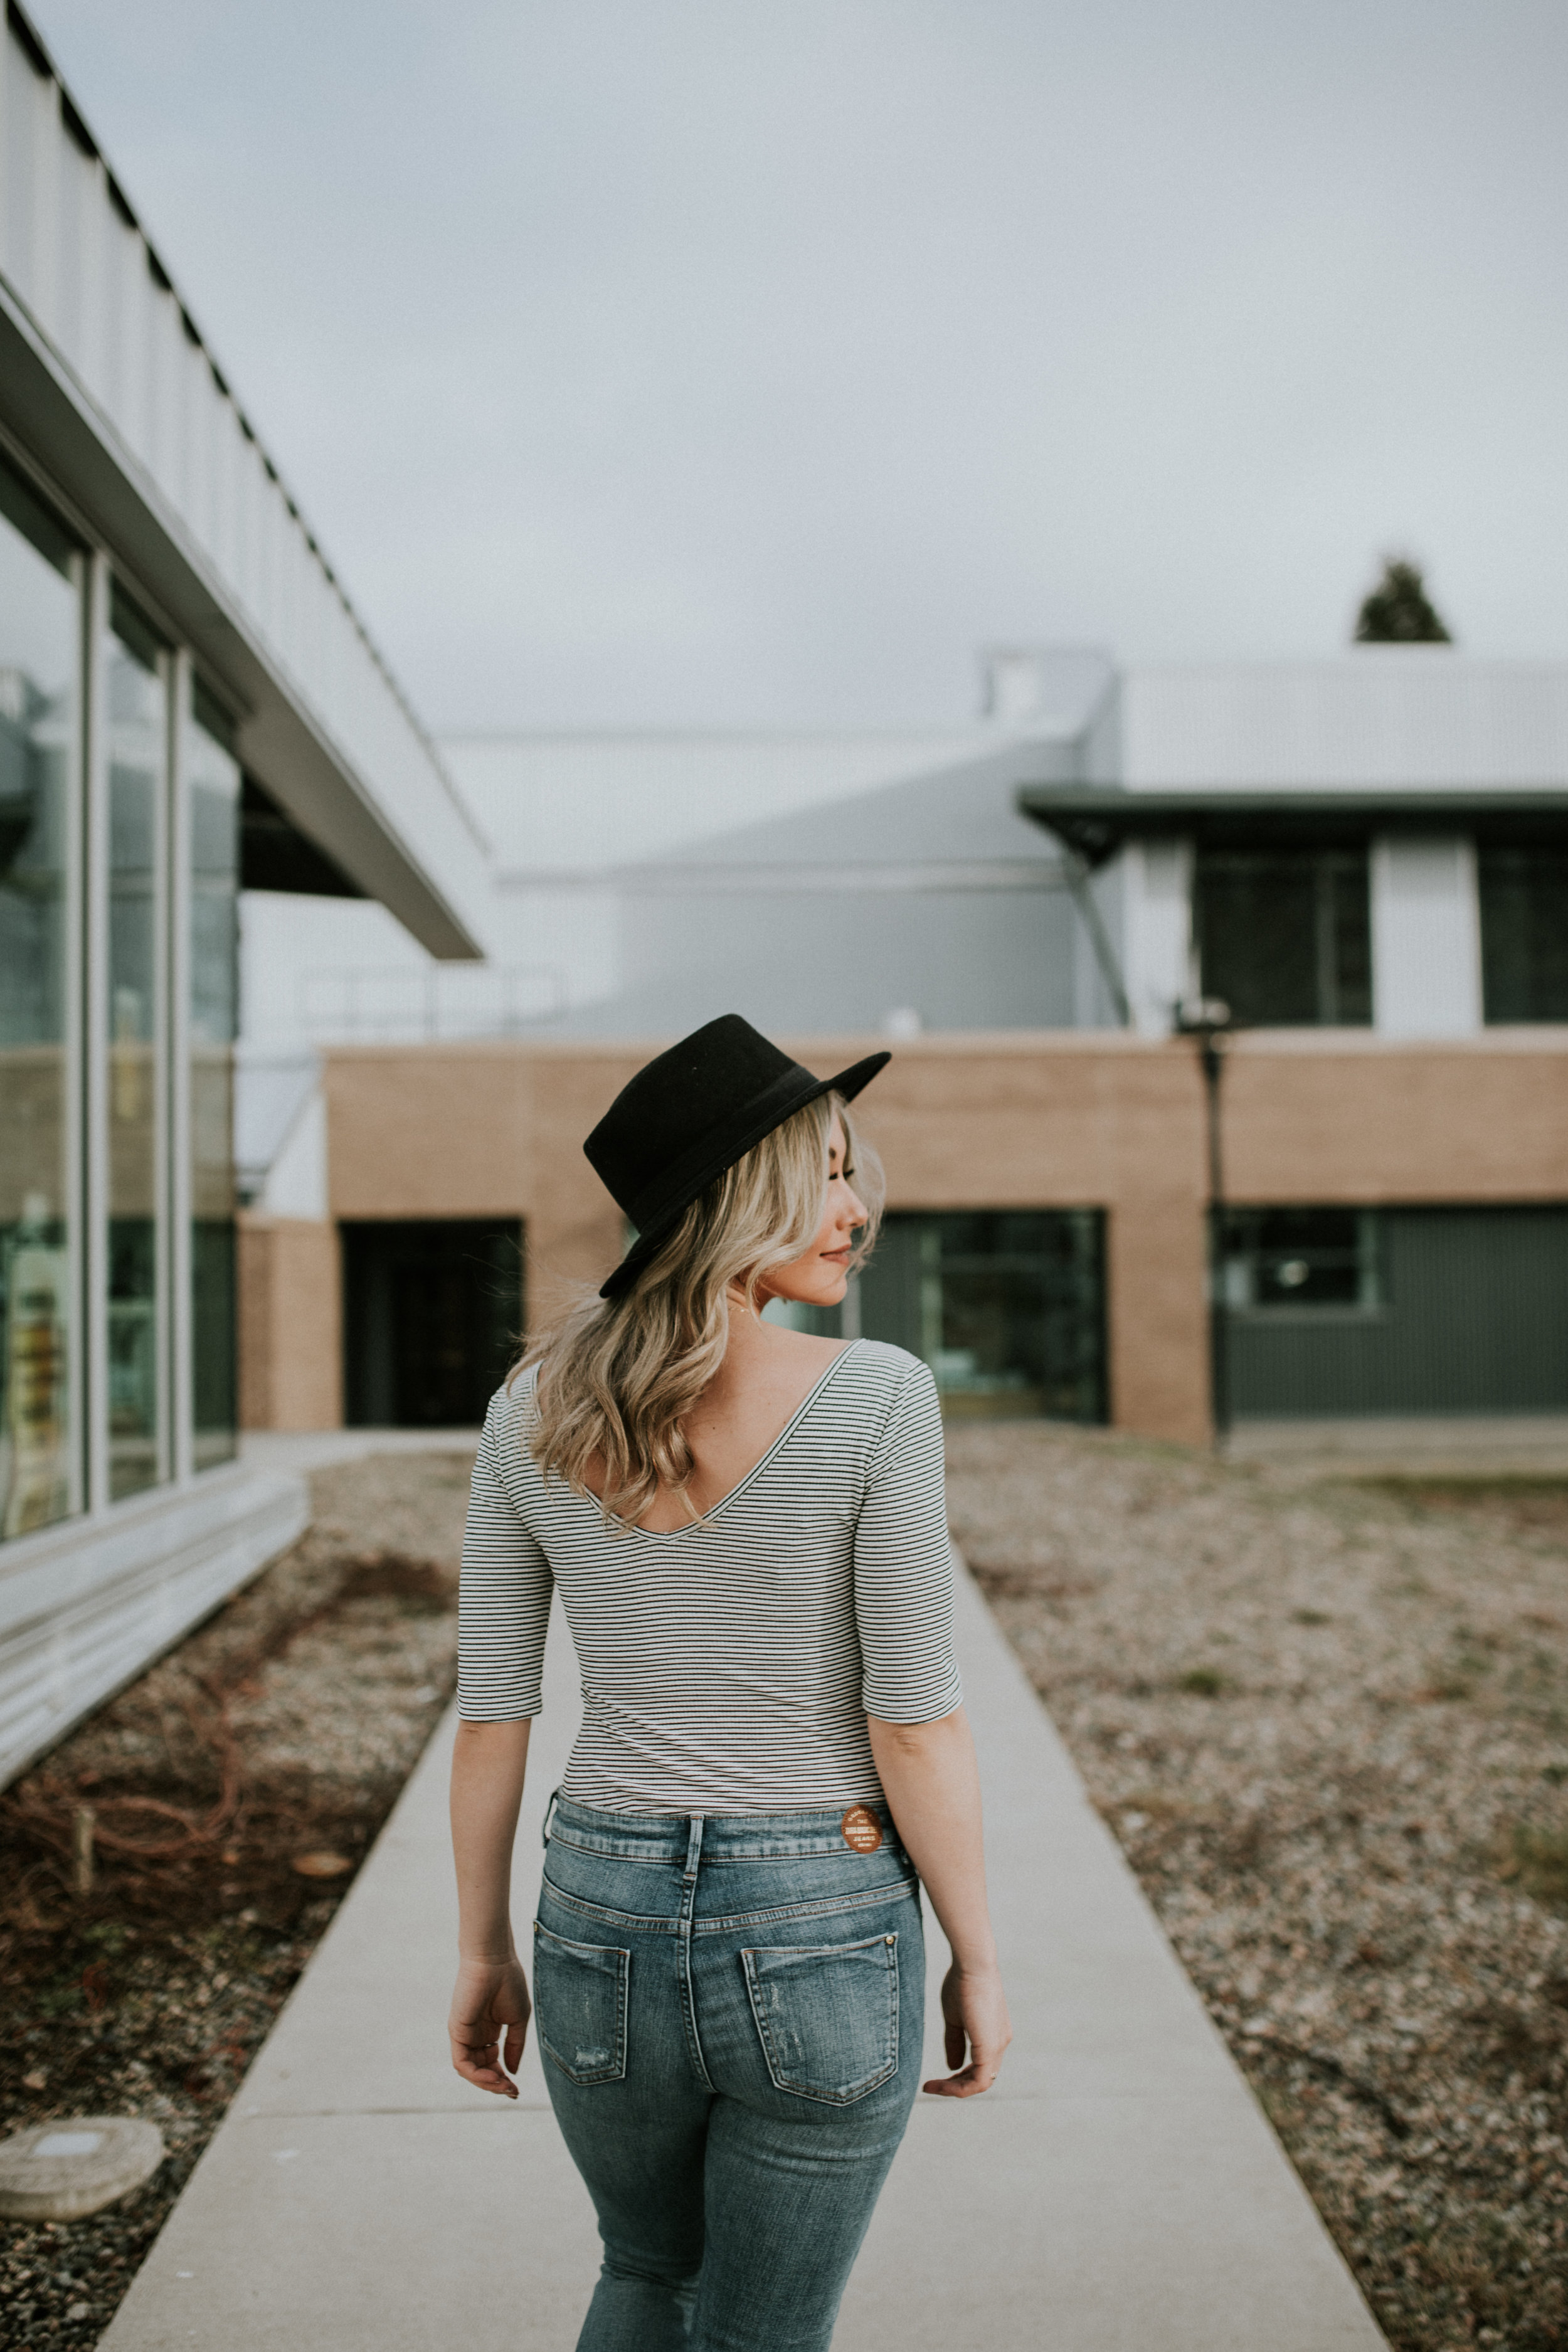 Vancouver blogger Chelle Morgan in jeans and striped shirt